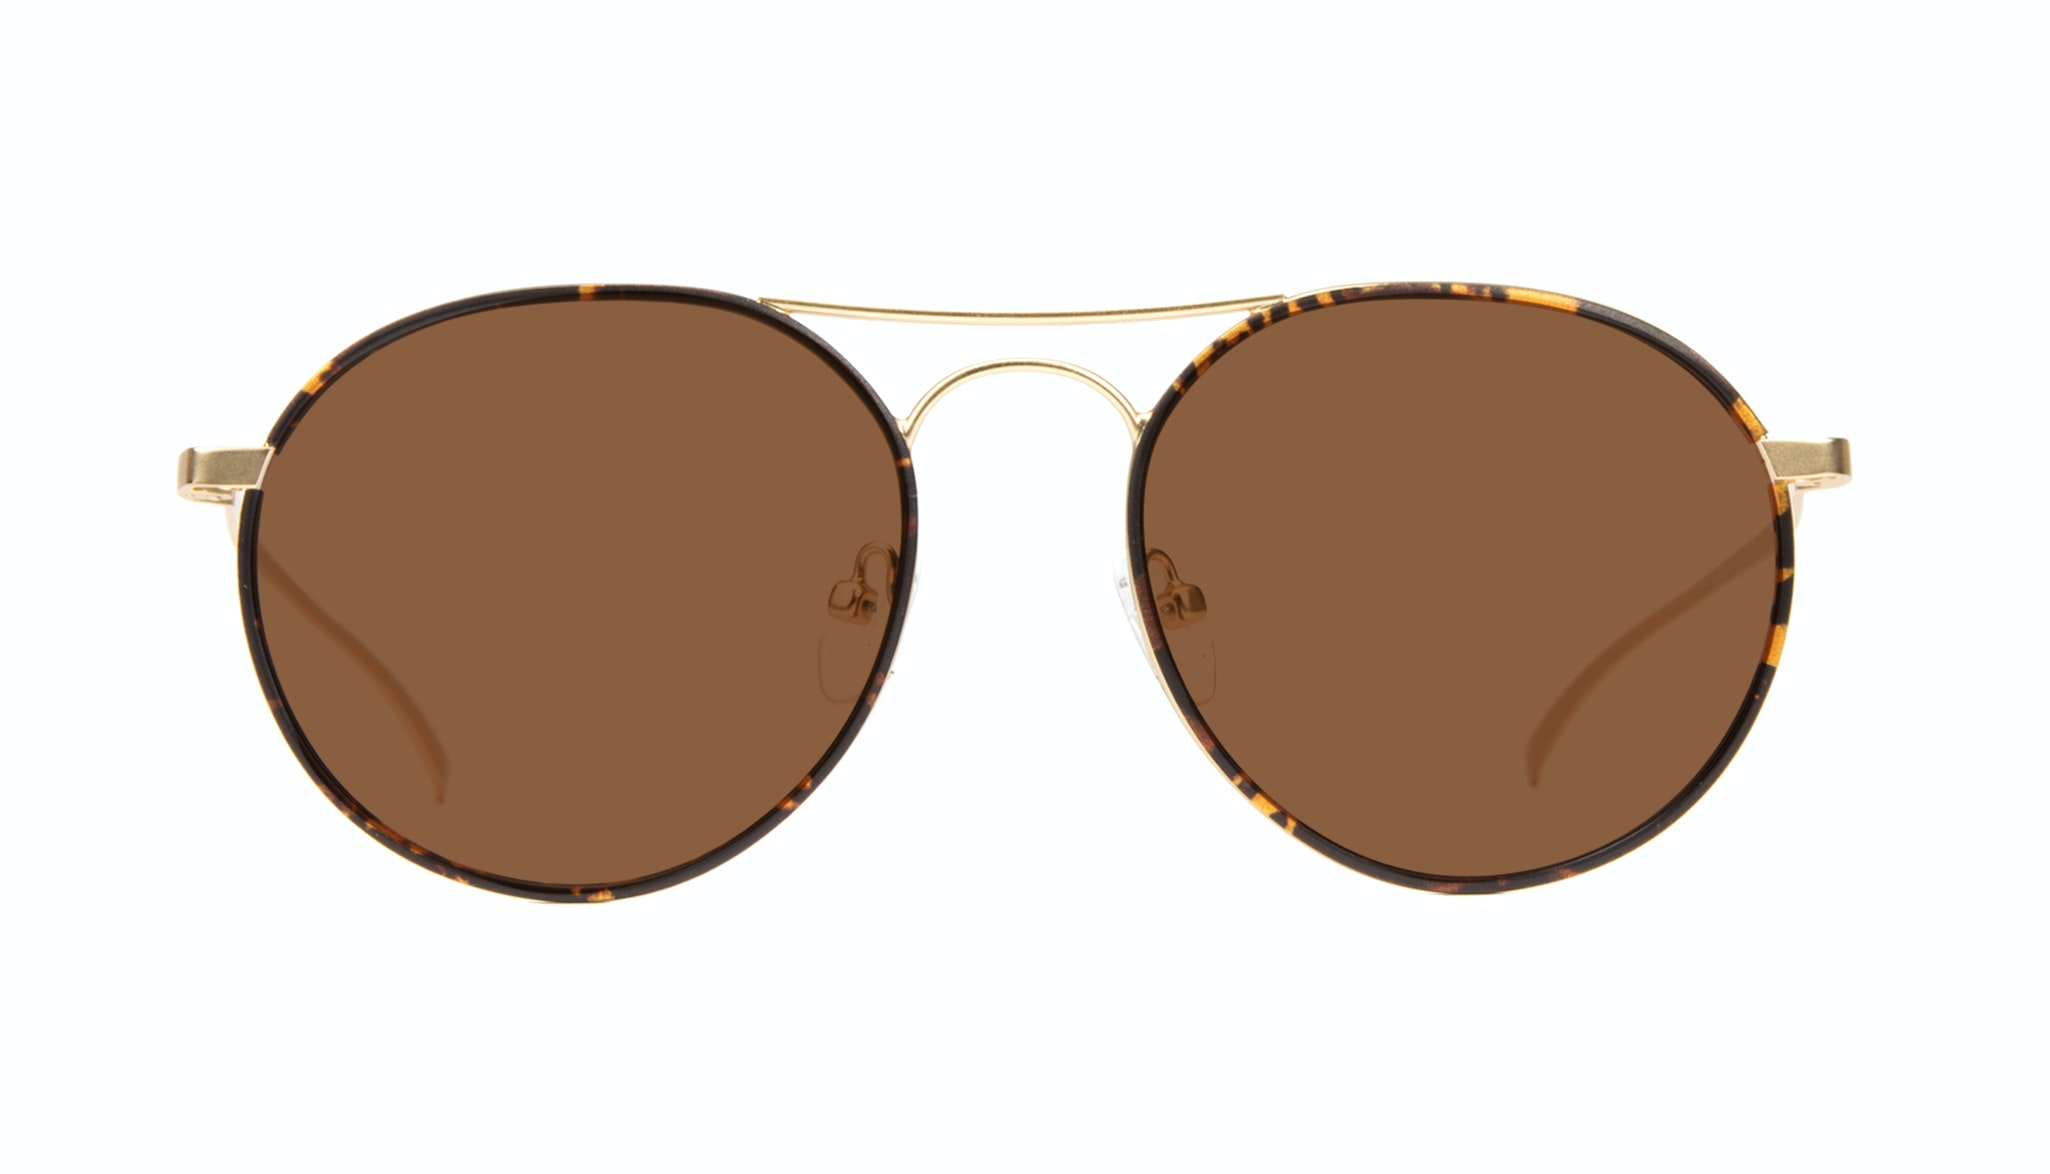 Affordable Fashion Glasses Aviator Round Sunglasses Men Contour Tortoise Front